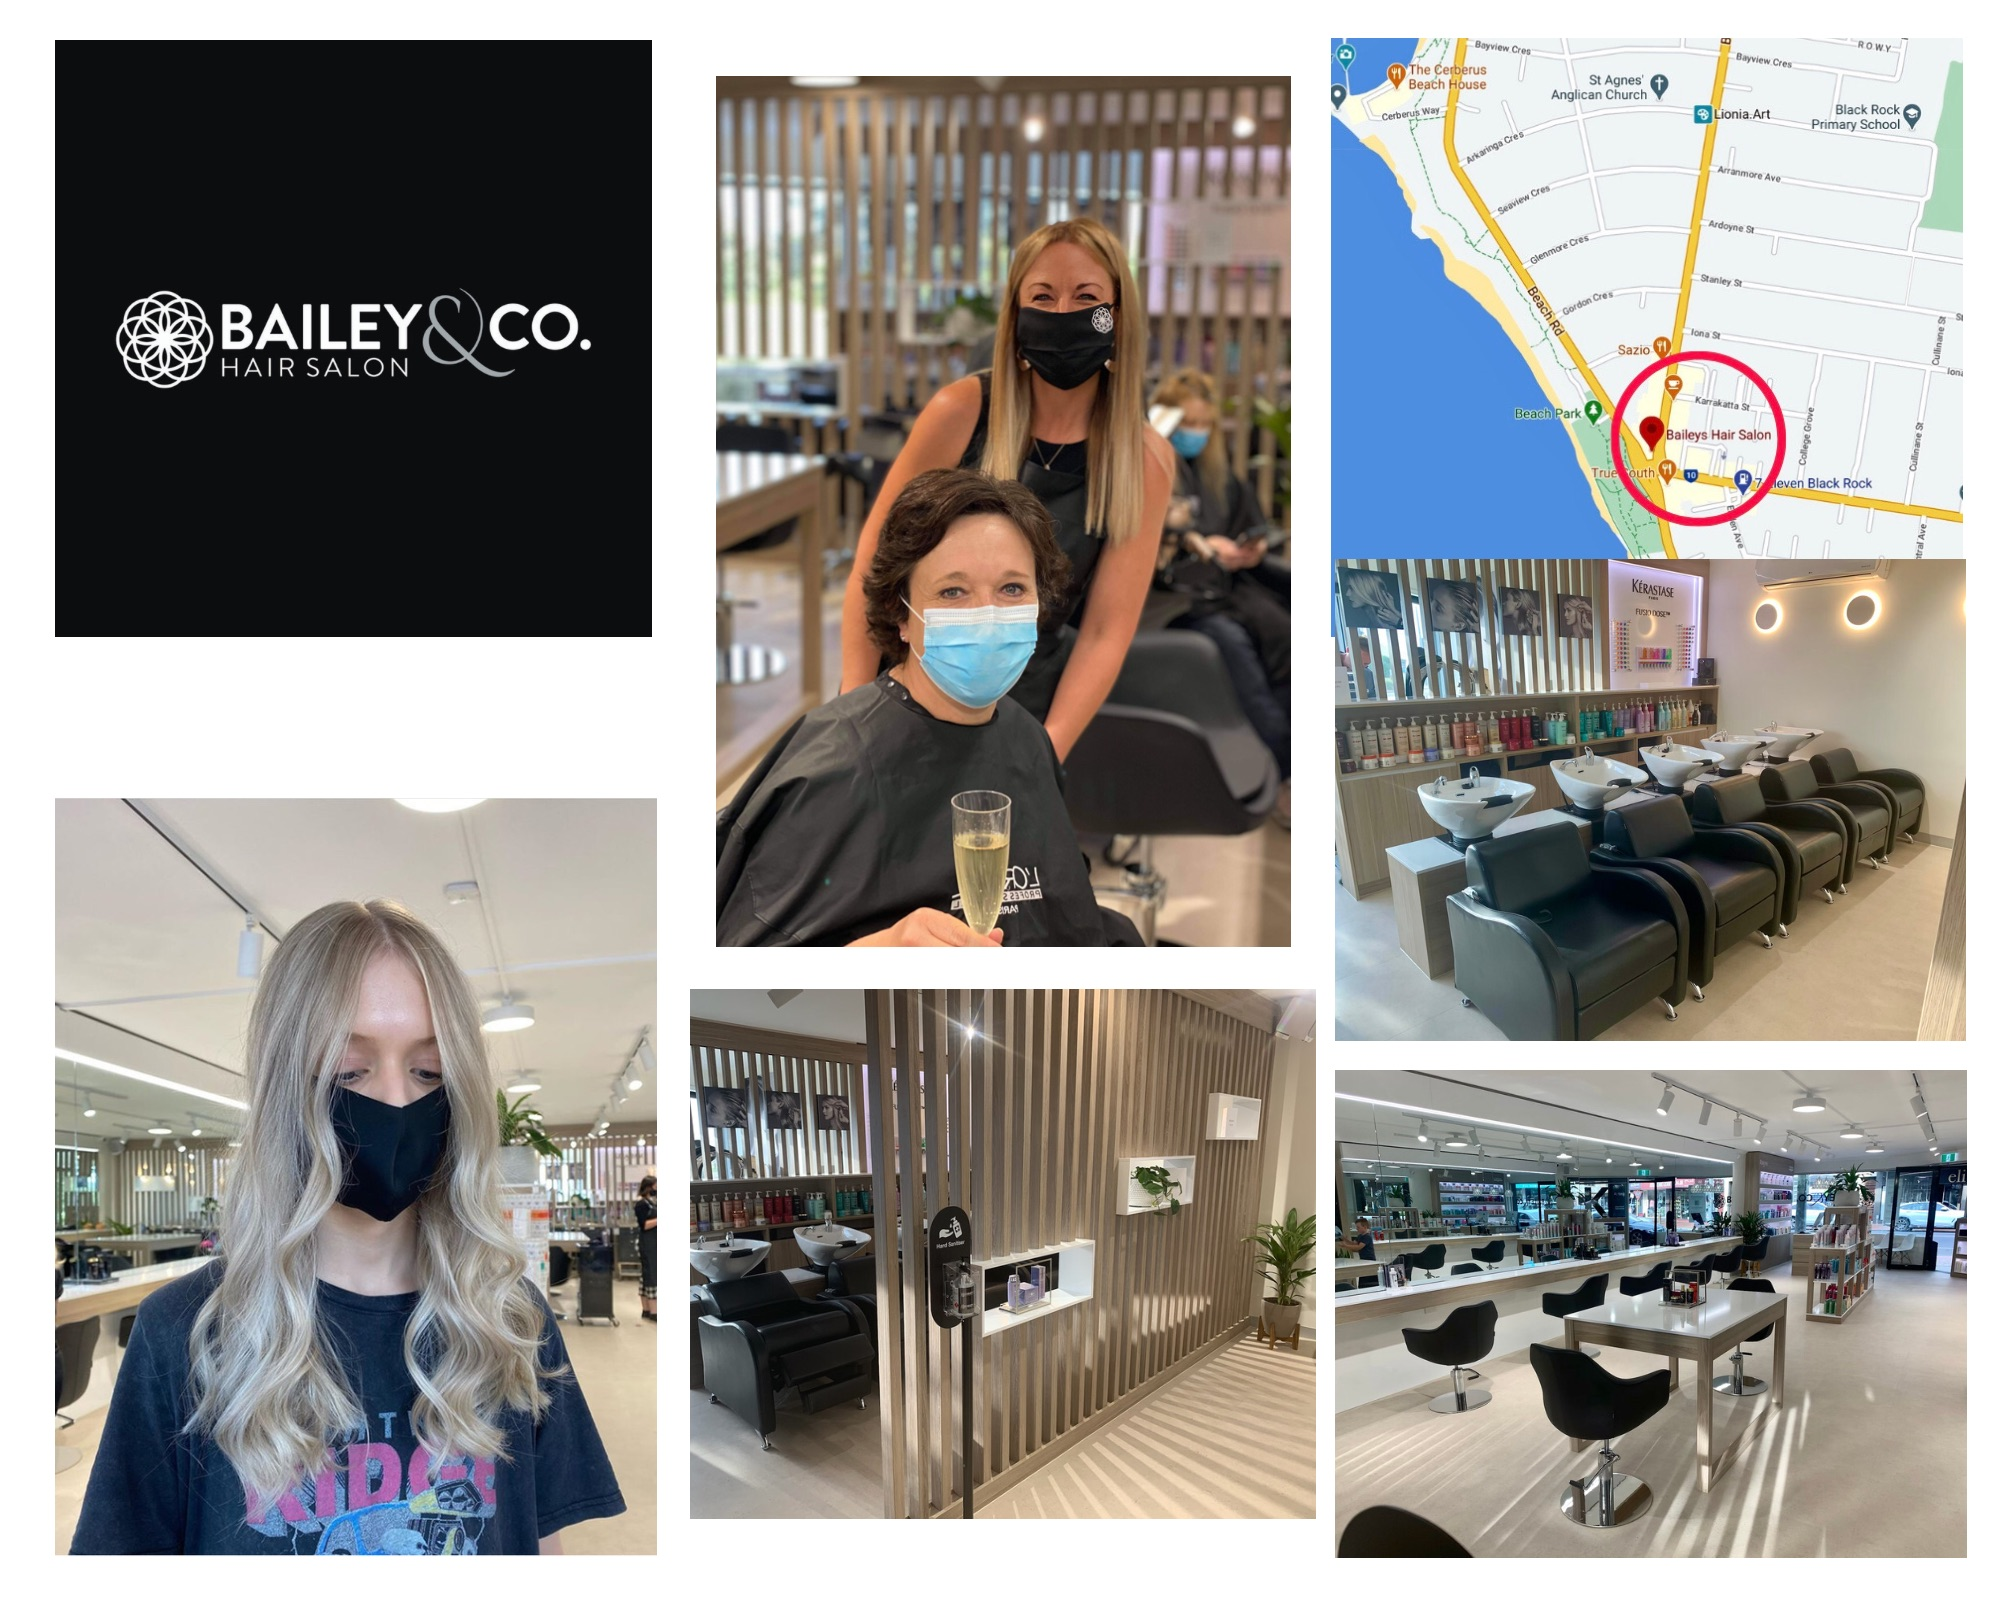 Bailey's collage